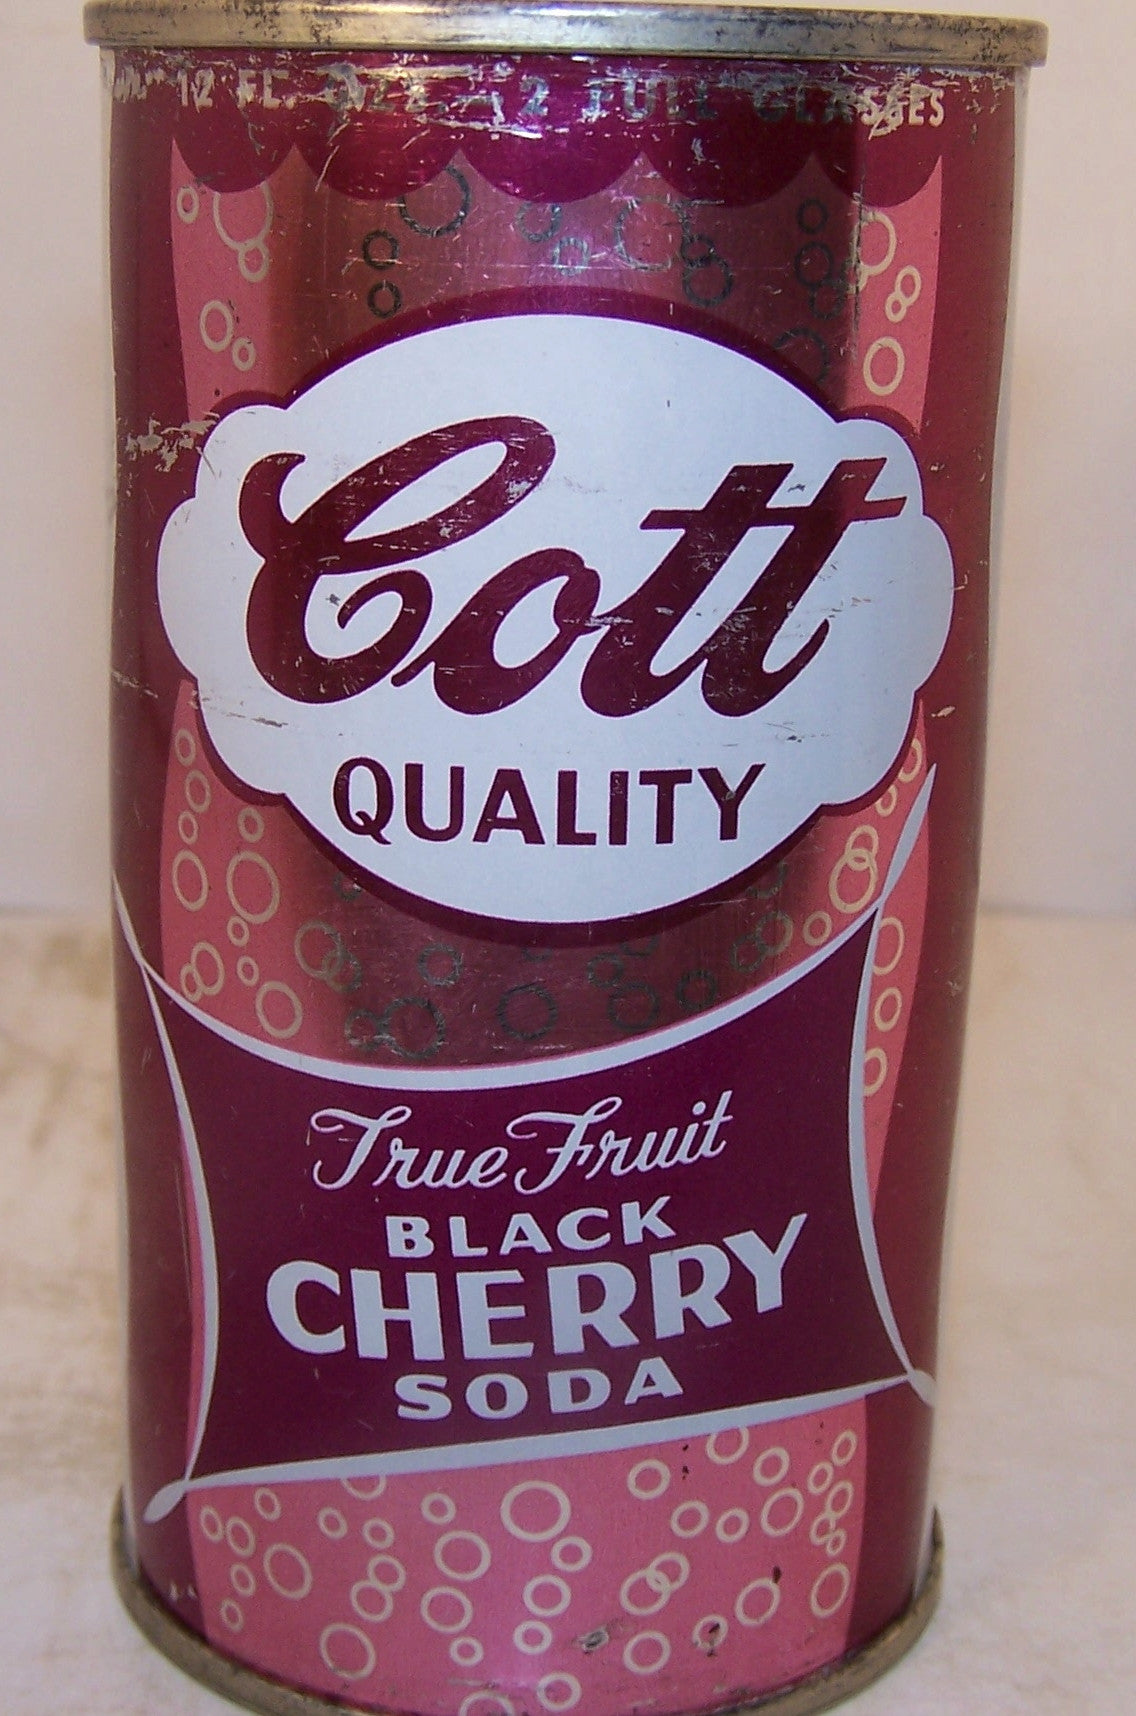 Cott Black Cherry soda, 2007 soda book page 41, Grade 1-